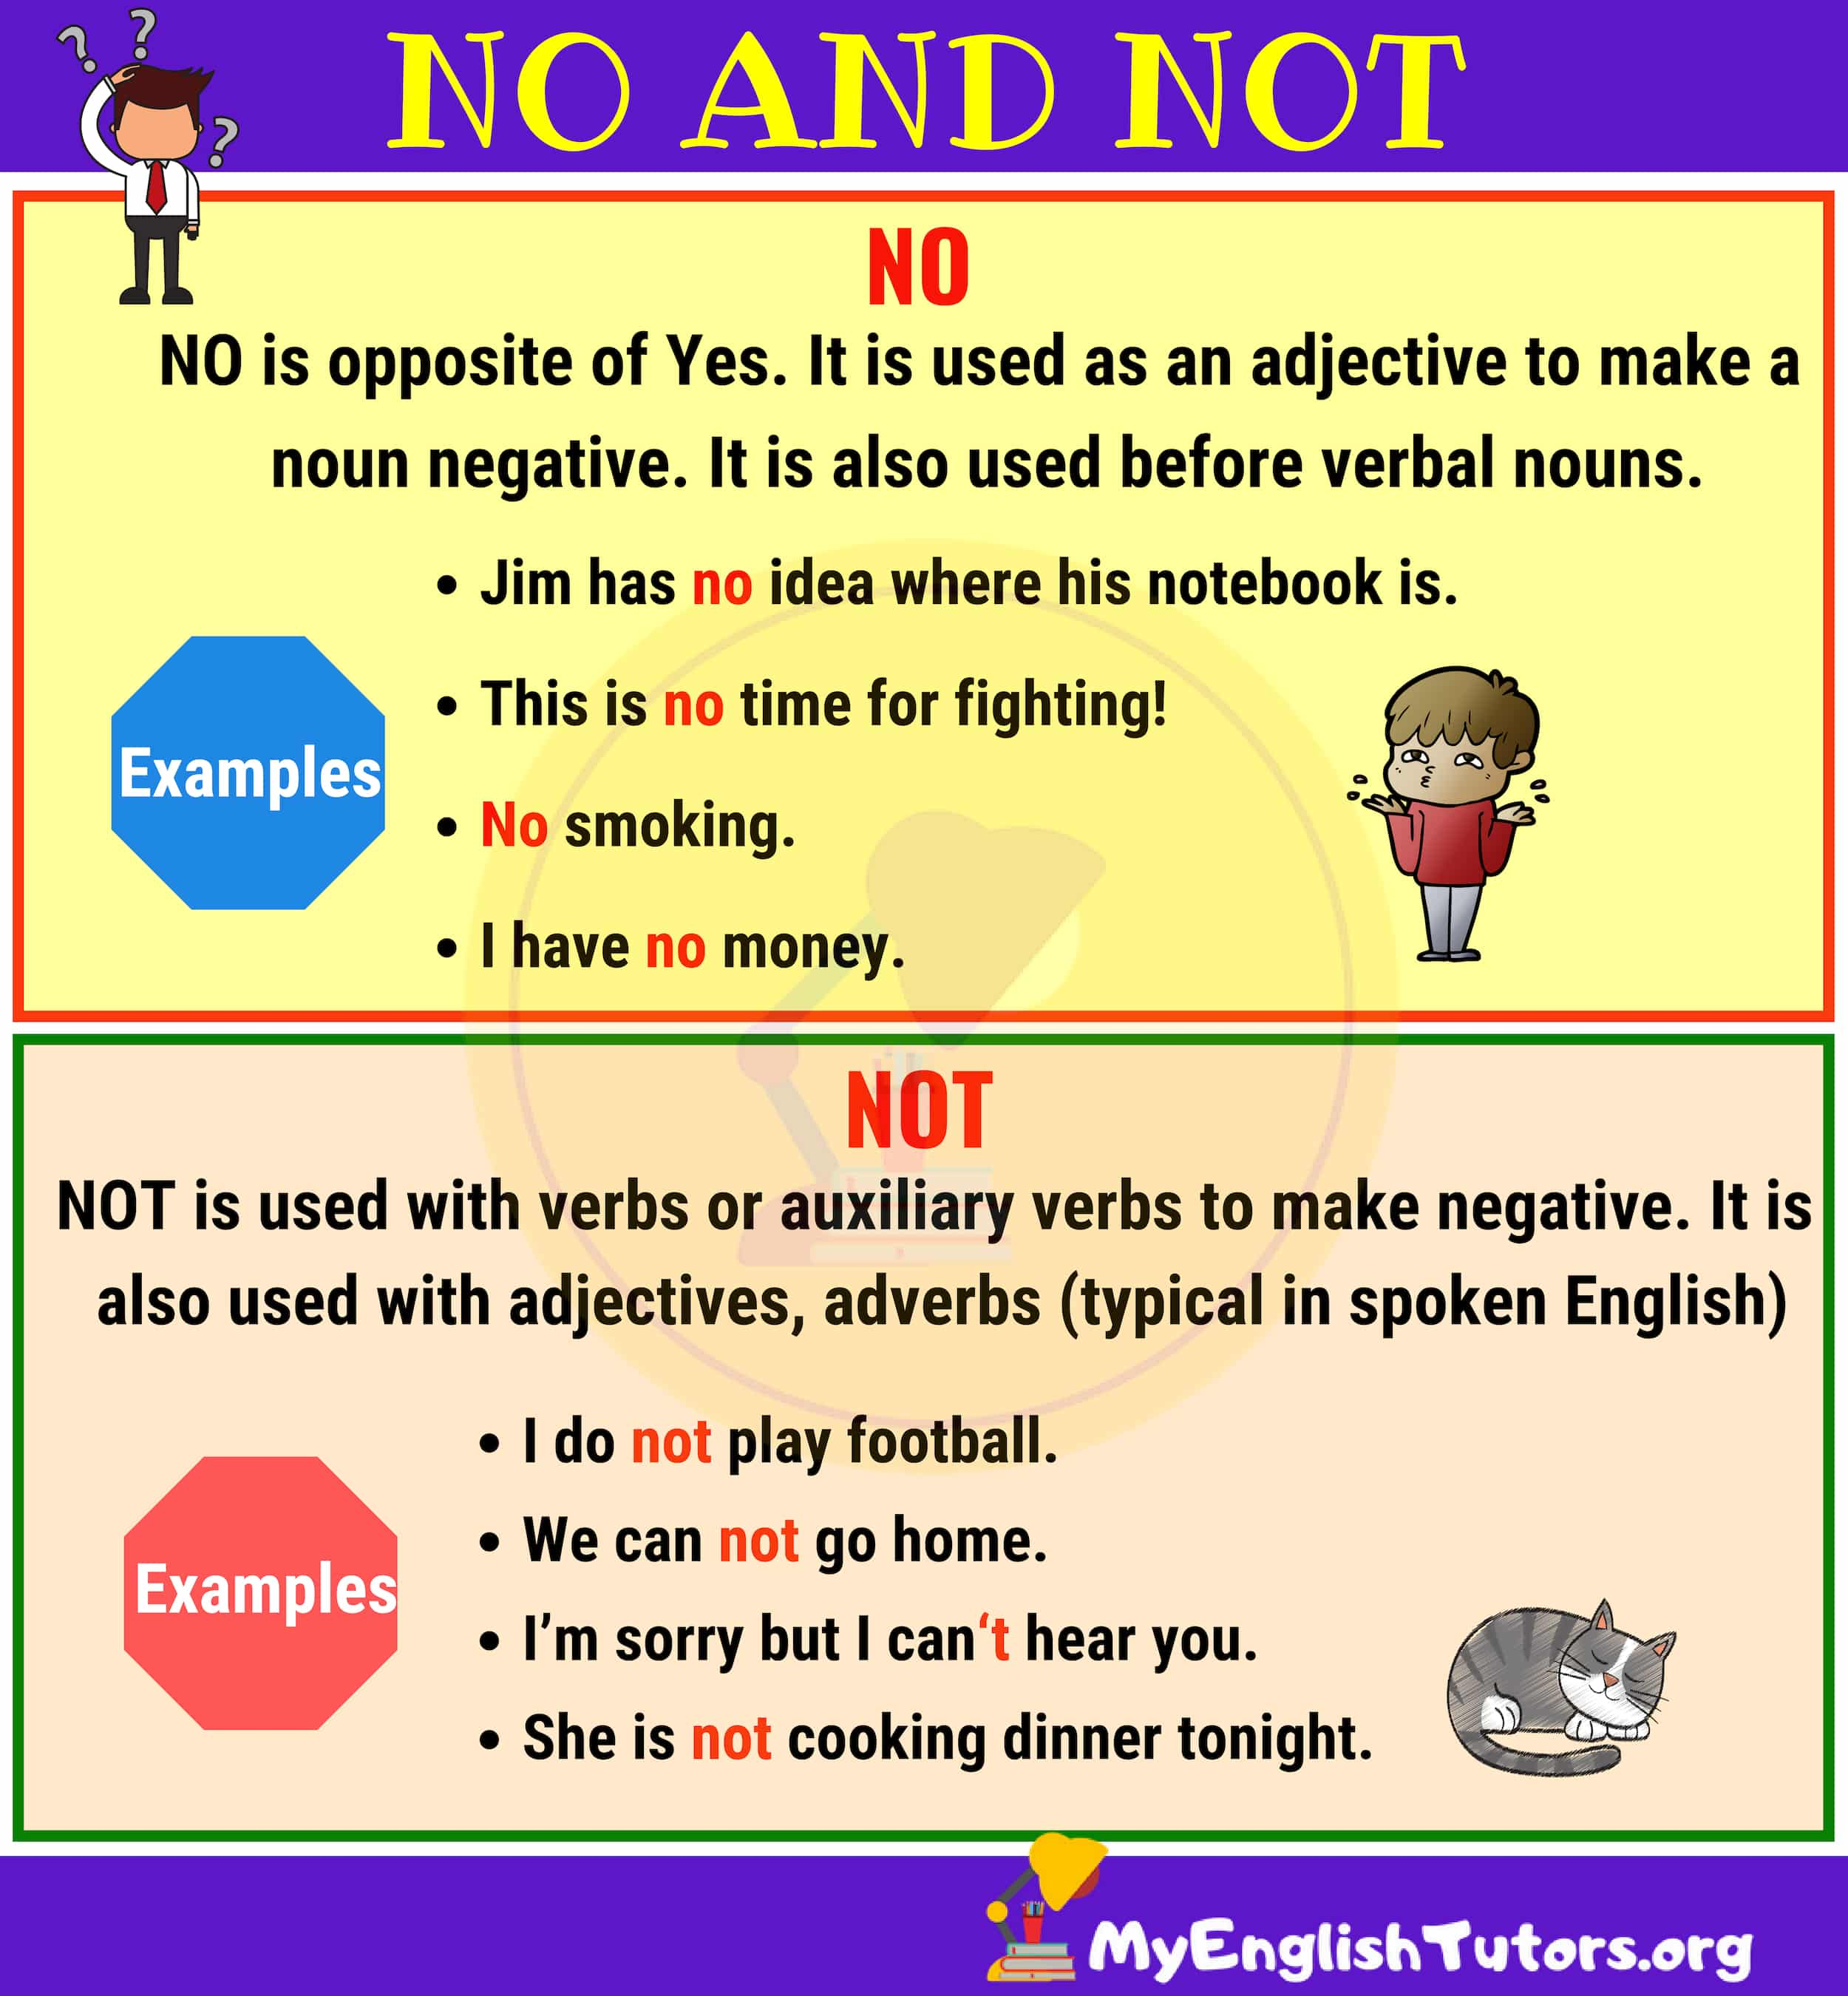 NO vs NOT: Commonly Confused Words in English